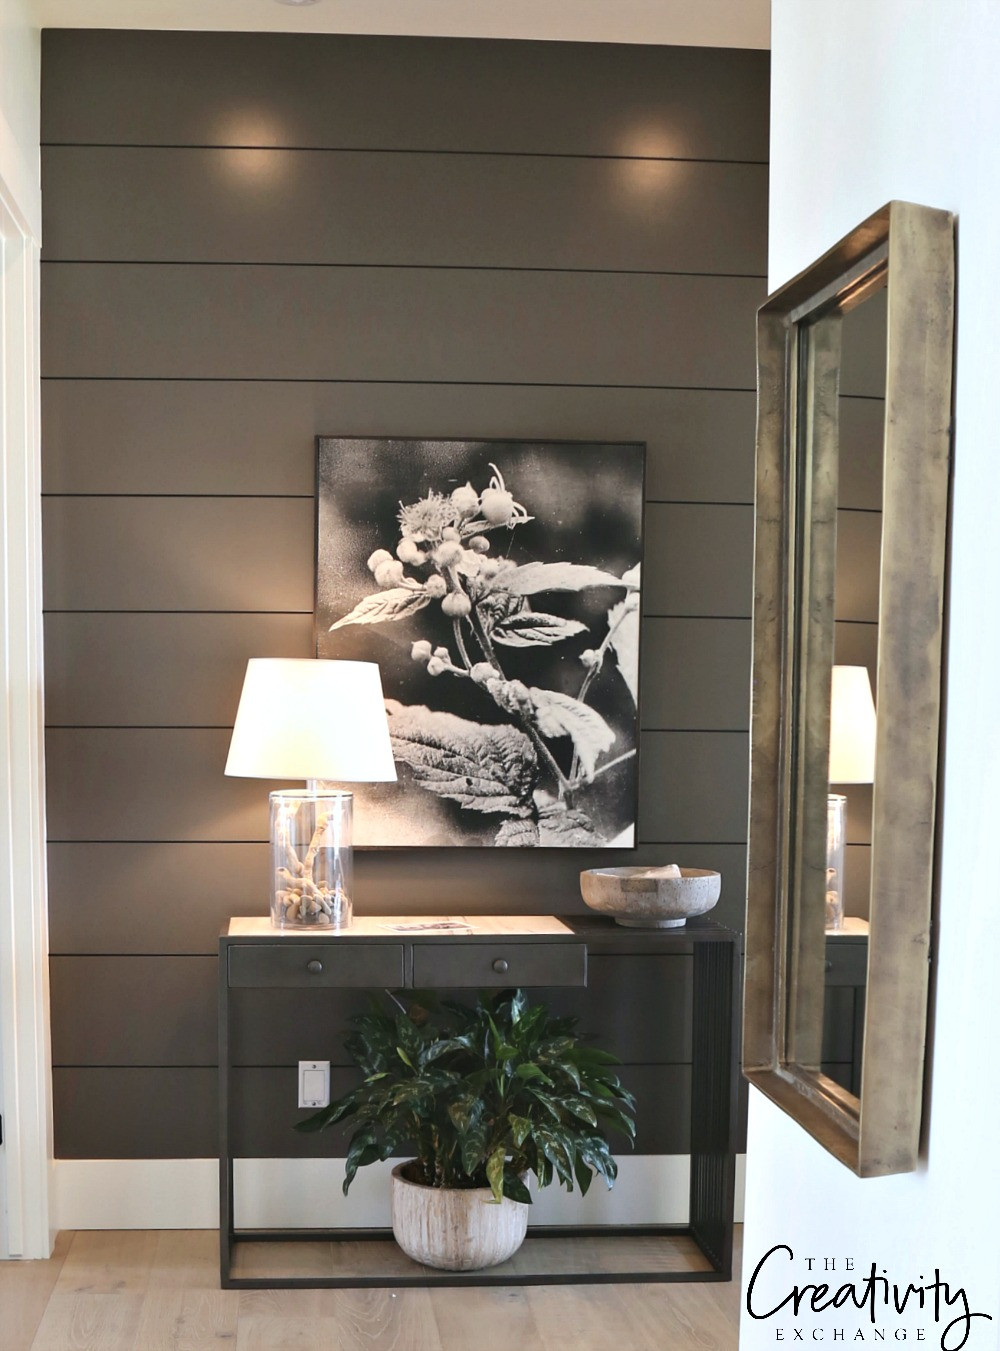 Best ideas about Painting Accent Walls . Save or Pin Painted Shiplap Accent Walls in Rich Colors Now.